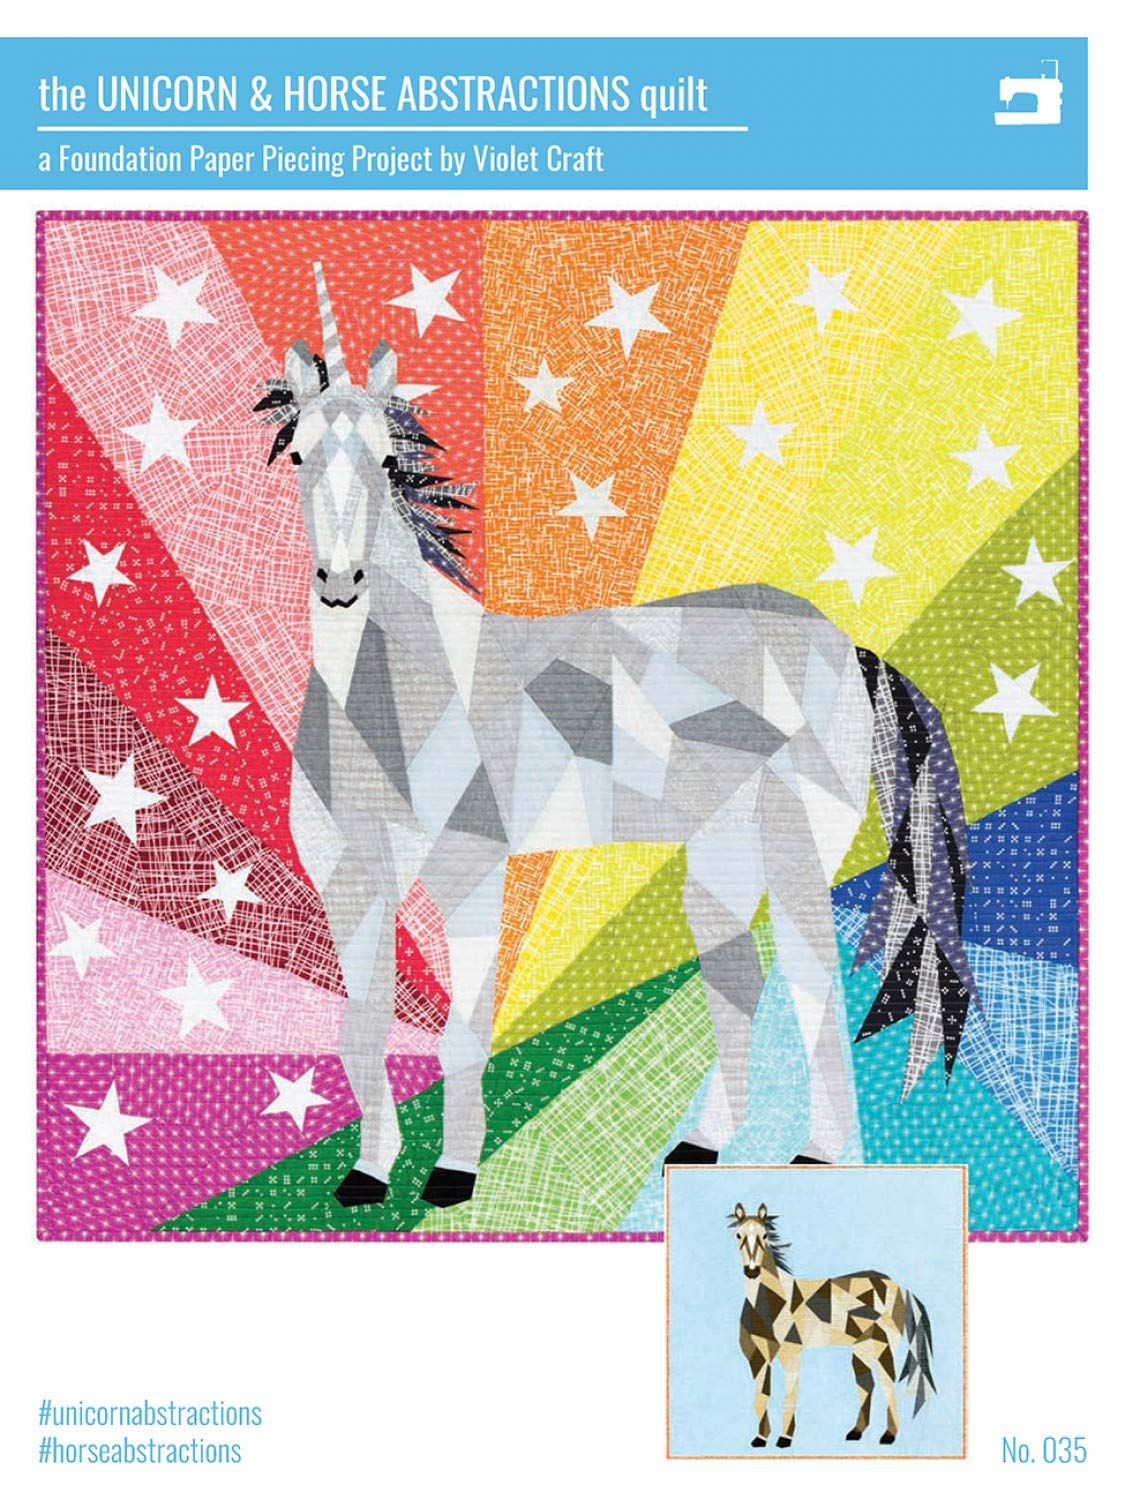 The Unicorn /& Horse Abstractions Foundation Paper Piecing Quilt Pattern by Violet Craft